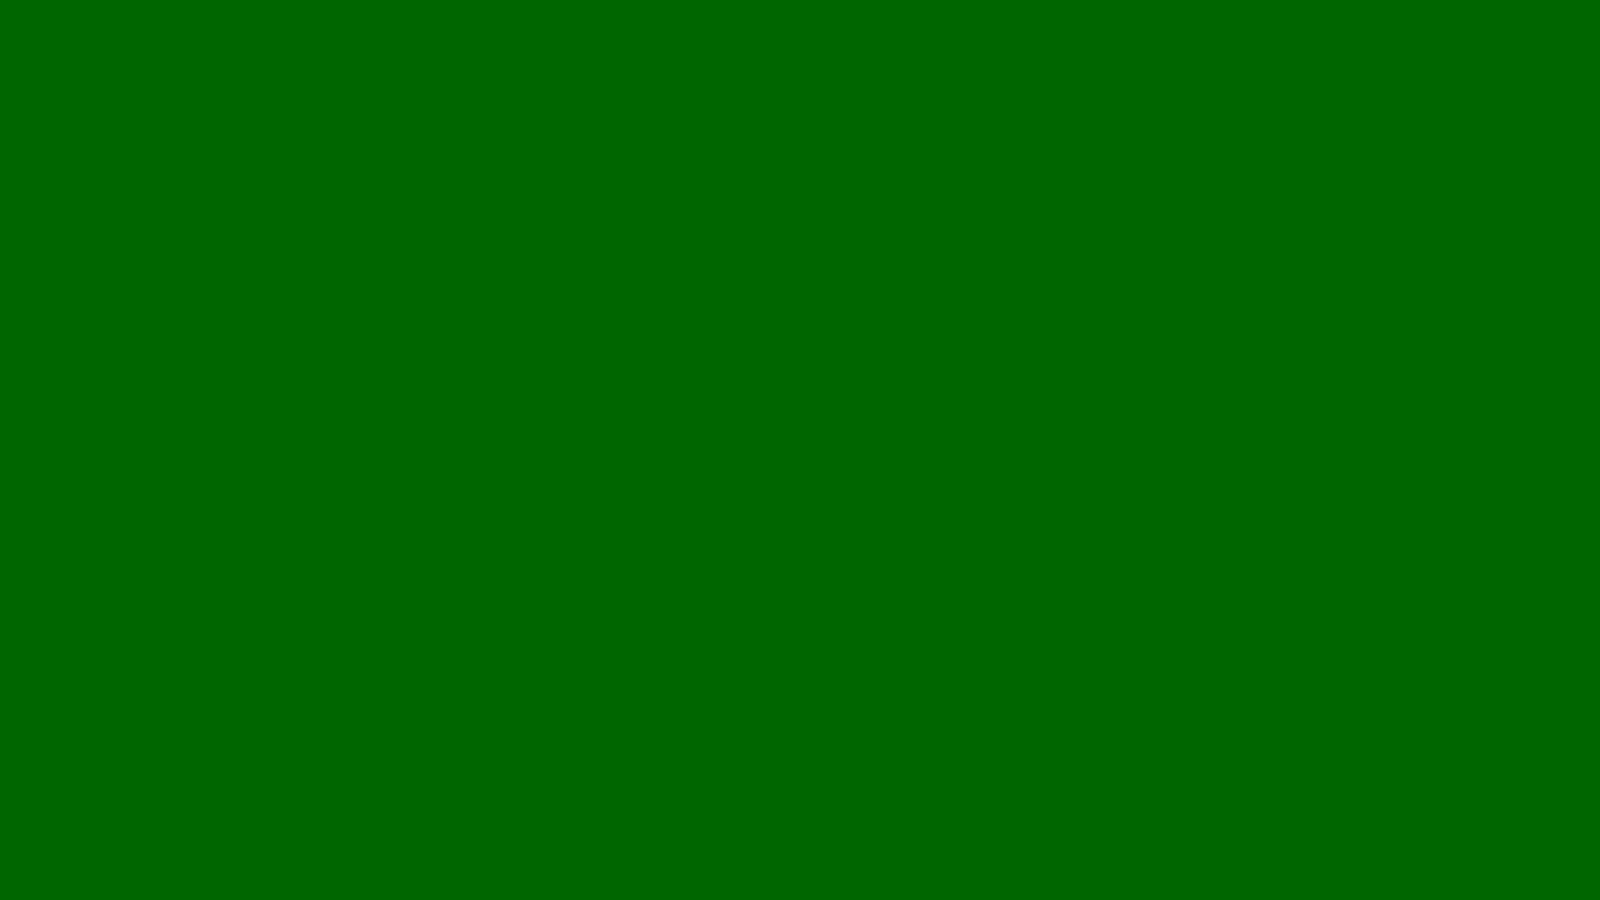 1600x900 Pakistan Green Solid Color Background